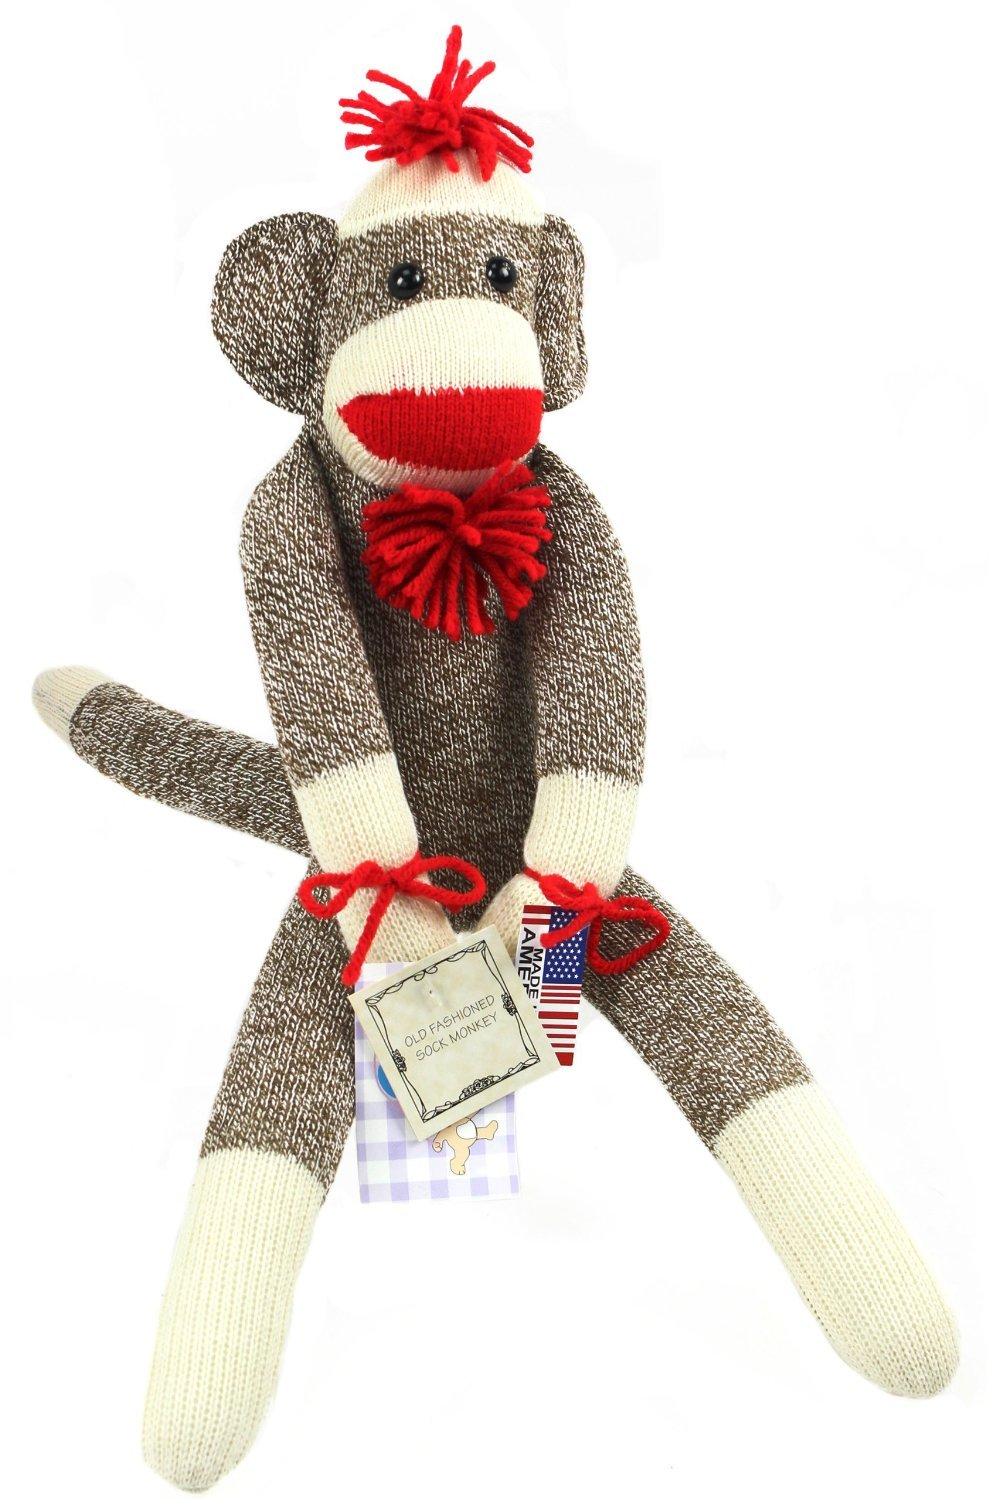 Made in the USA Ozark Mountain Kids Featuring Classic Button Eyes and Poof Ball Necktie The Original Sock Monkey Pom Pom Hat Measures 19 Inches Tall